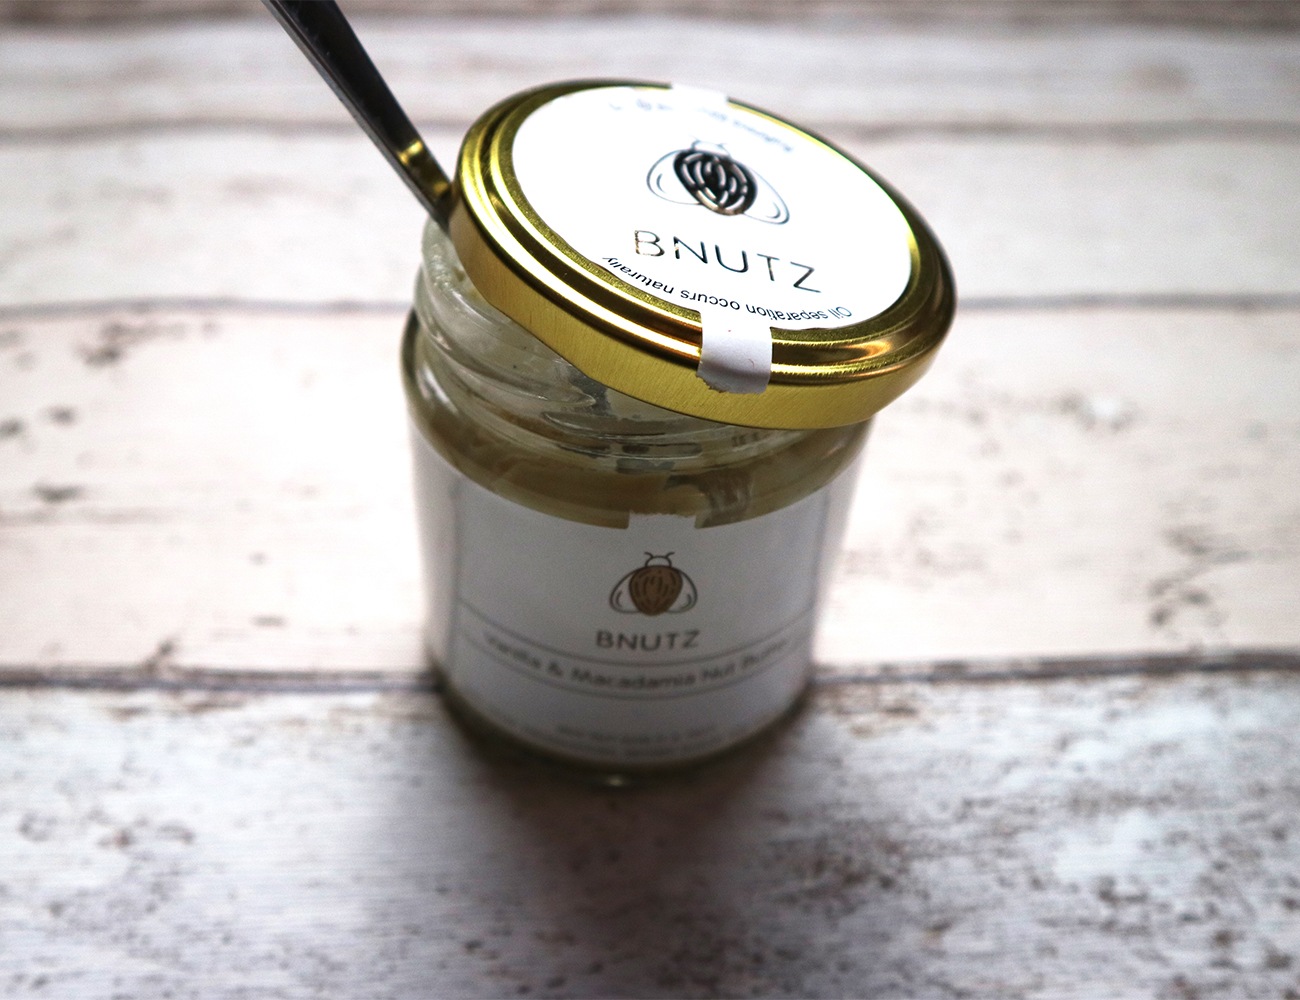 Vanilla and macadamia nut butter ajar with a metal spoon poking out